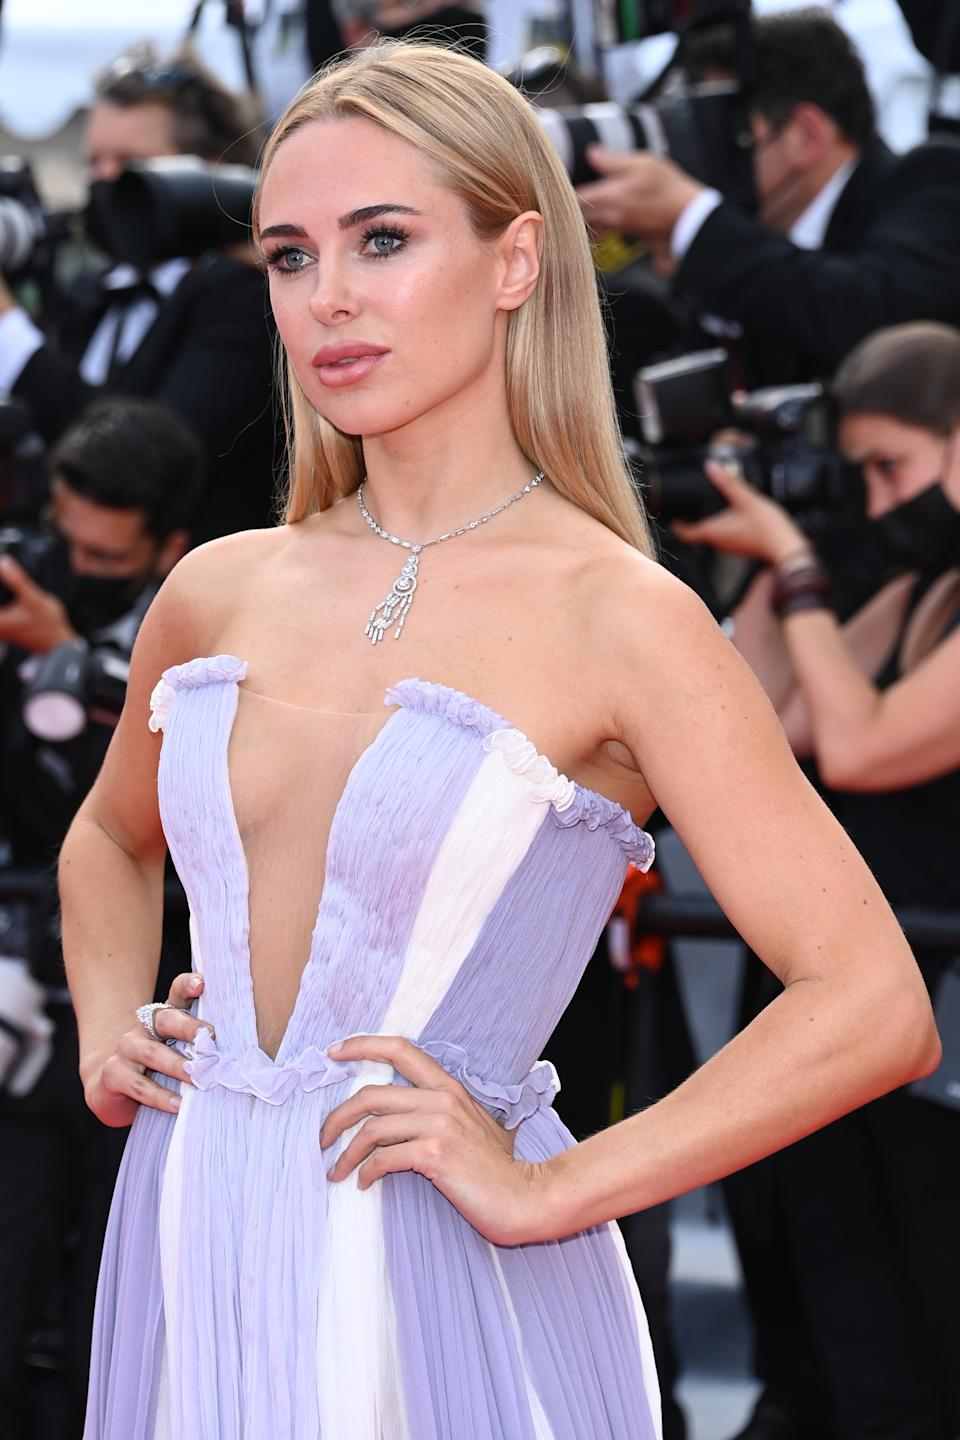 Kimberley Garner wears a lilac and white gown at the